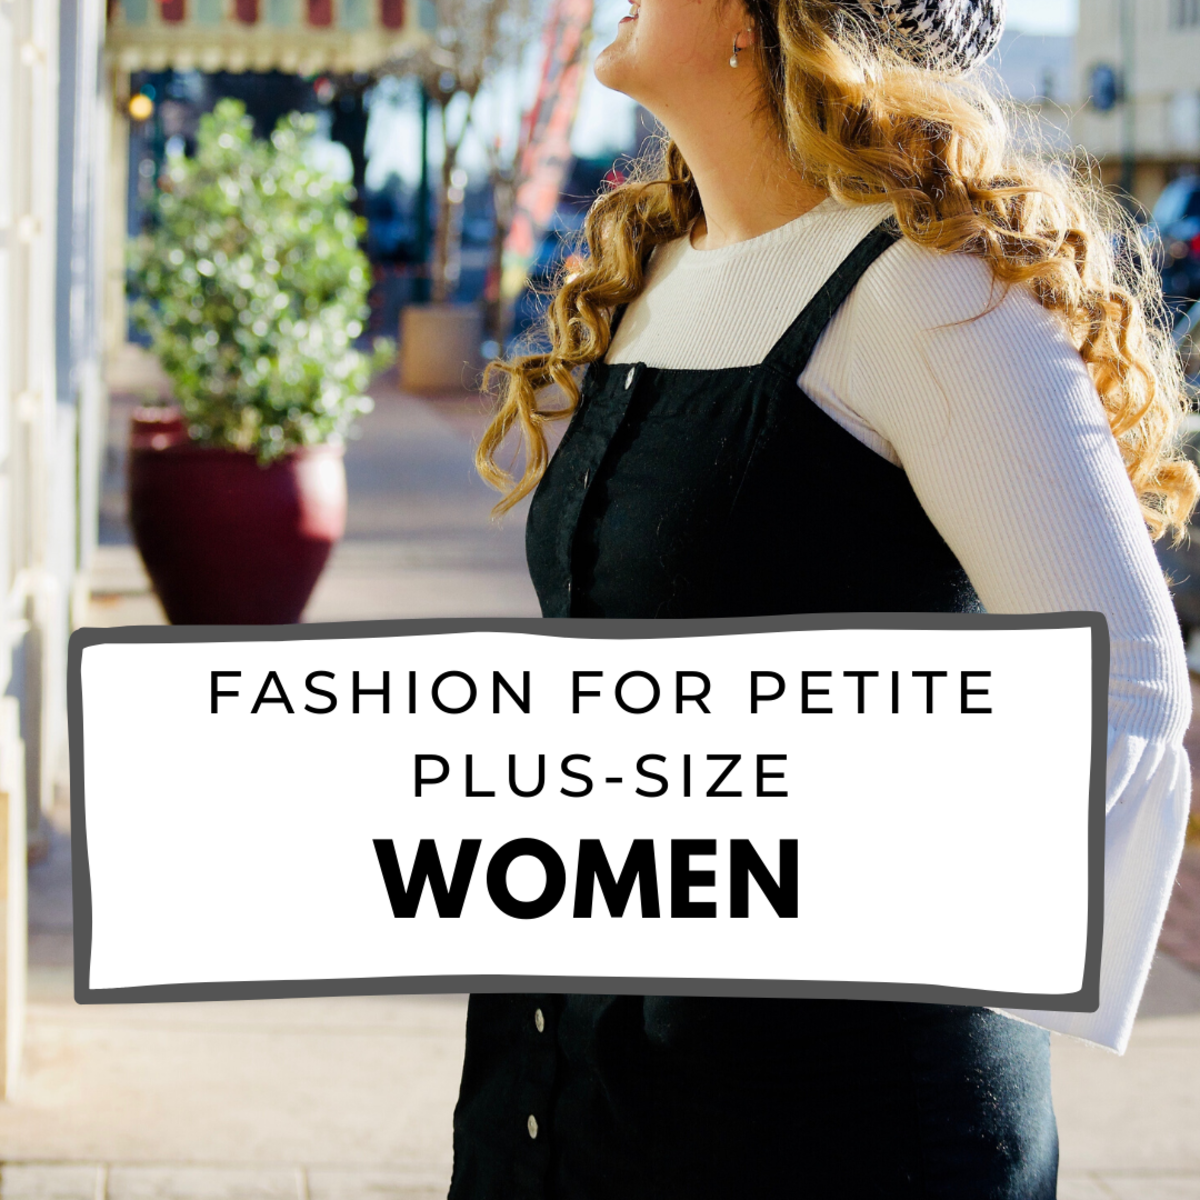 Short, Fat, and Stylish: A Fashion Guide for Plus-Size Petite Women